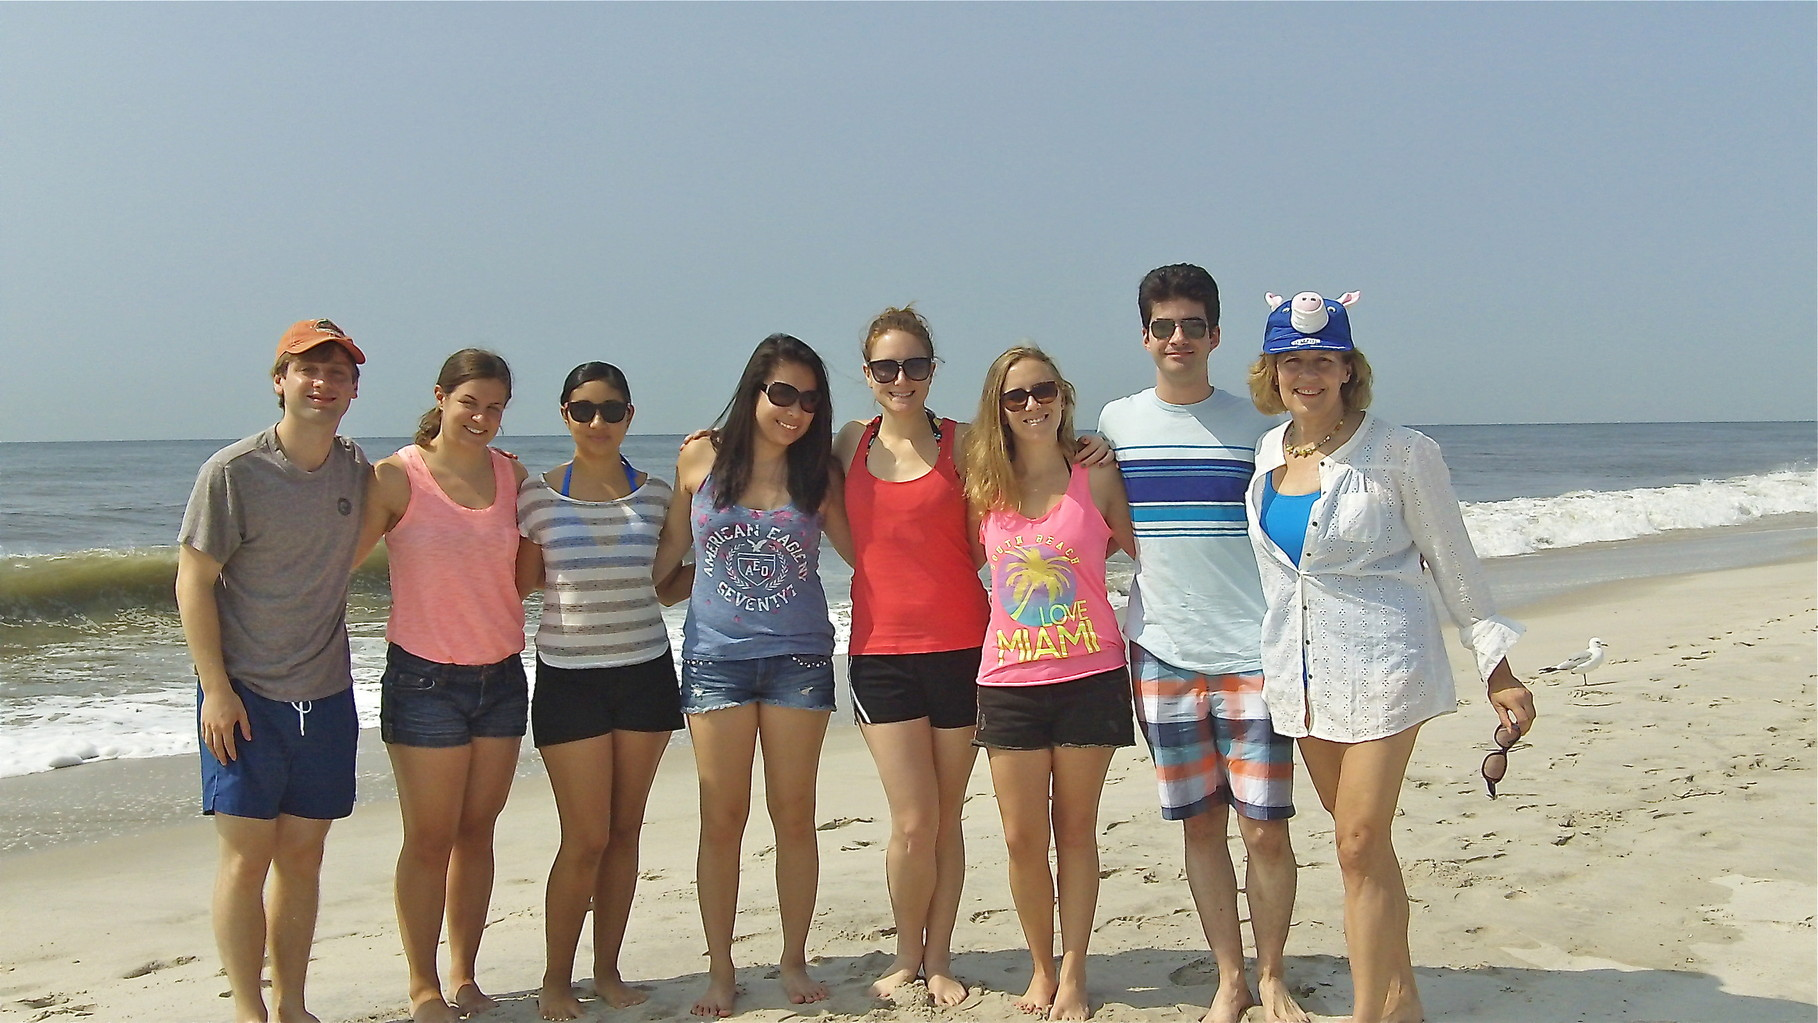 Gudas Summer Lab Trip-Jones Beach, July, 2014...oh, no, the pig hat comes out again!